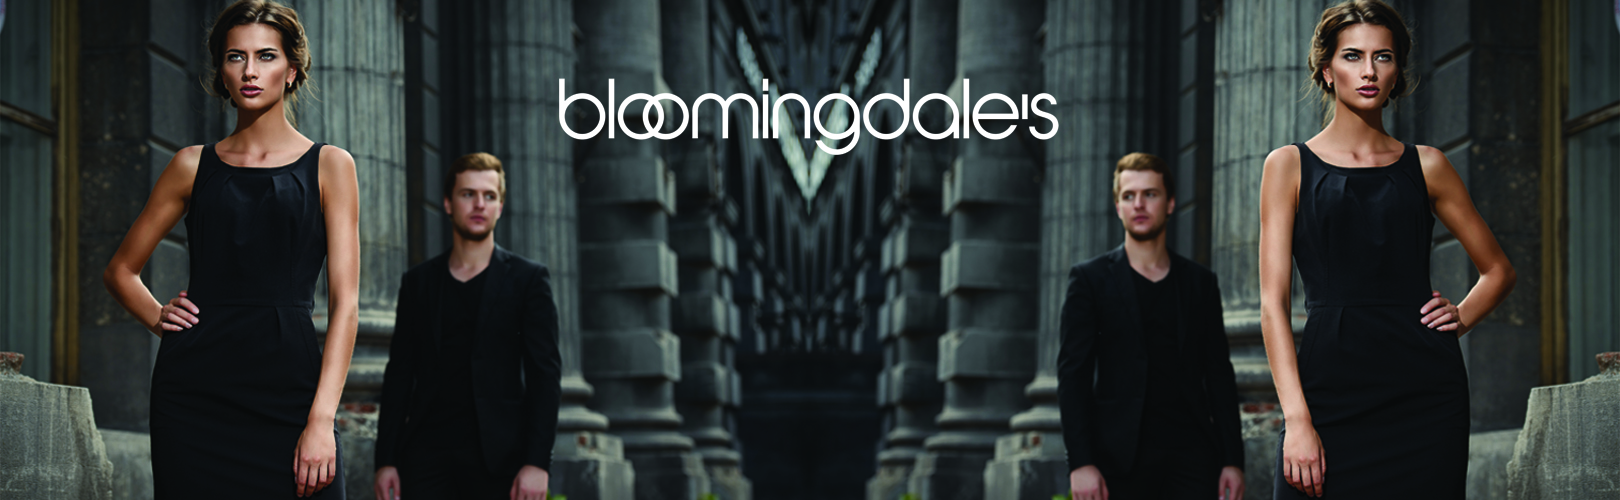 $59 coupon for a $100 e-Gift card for Bloomingdale's!